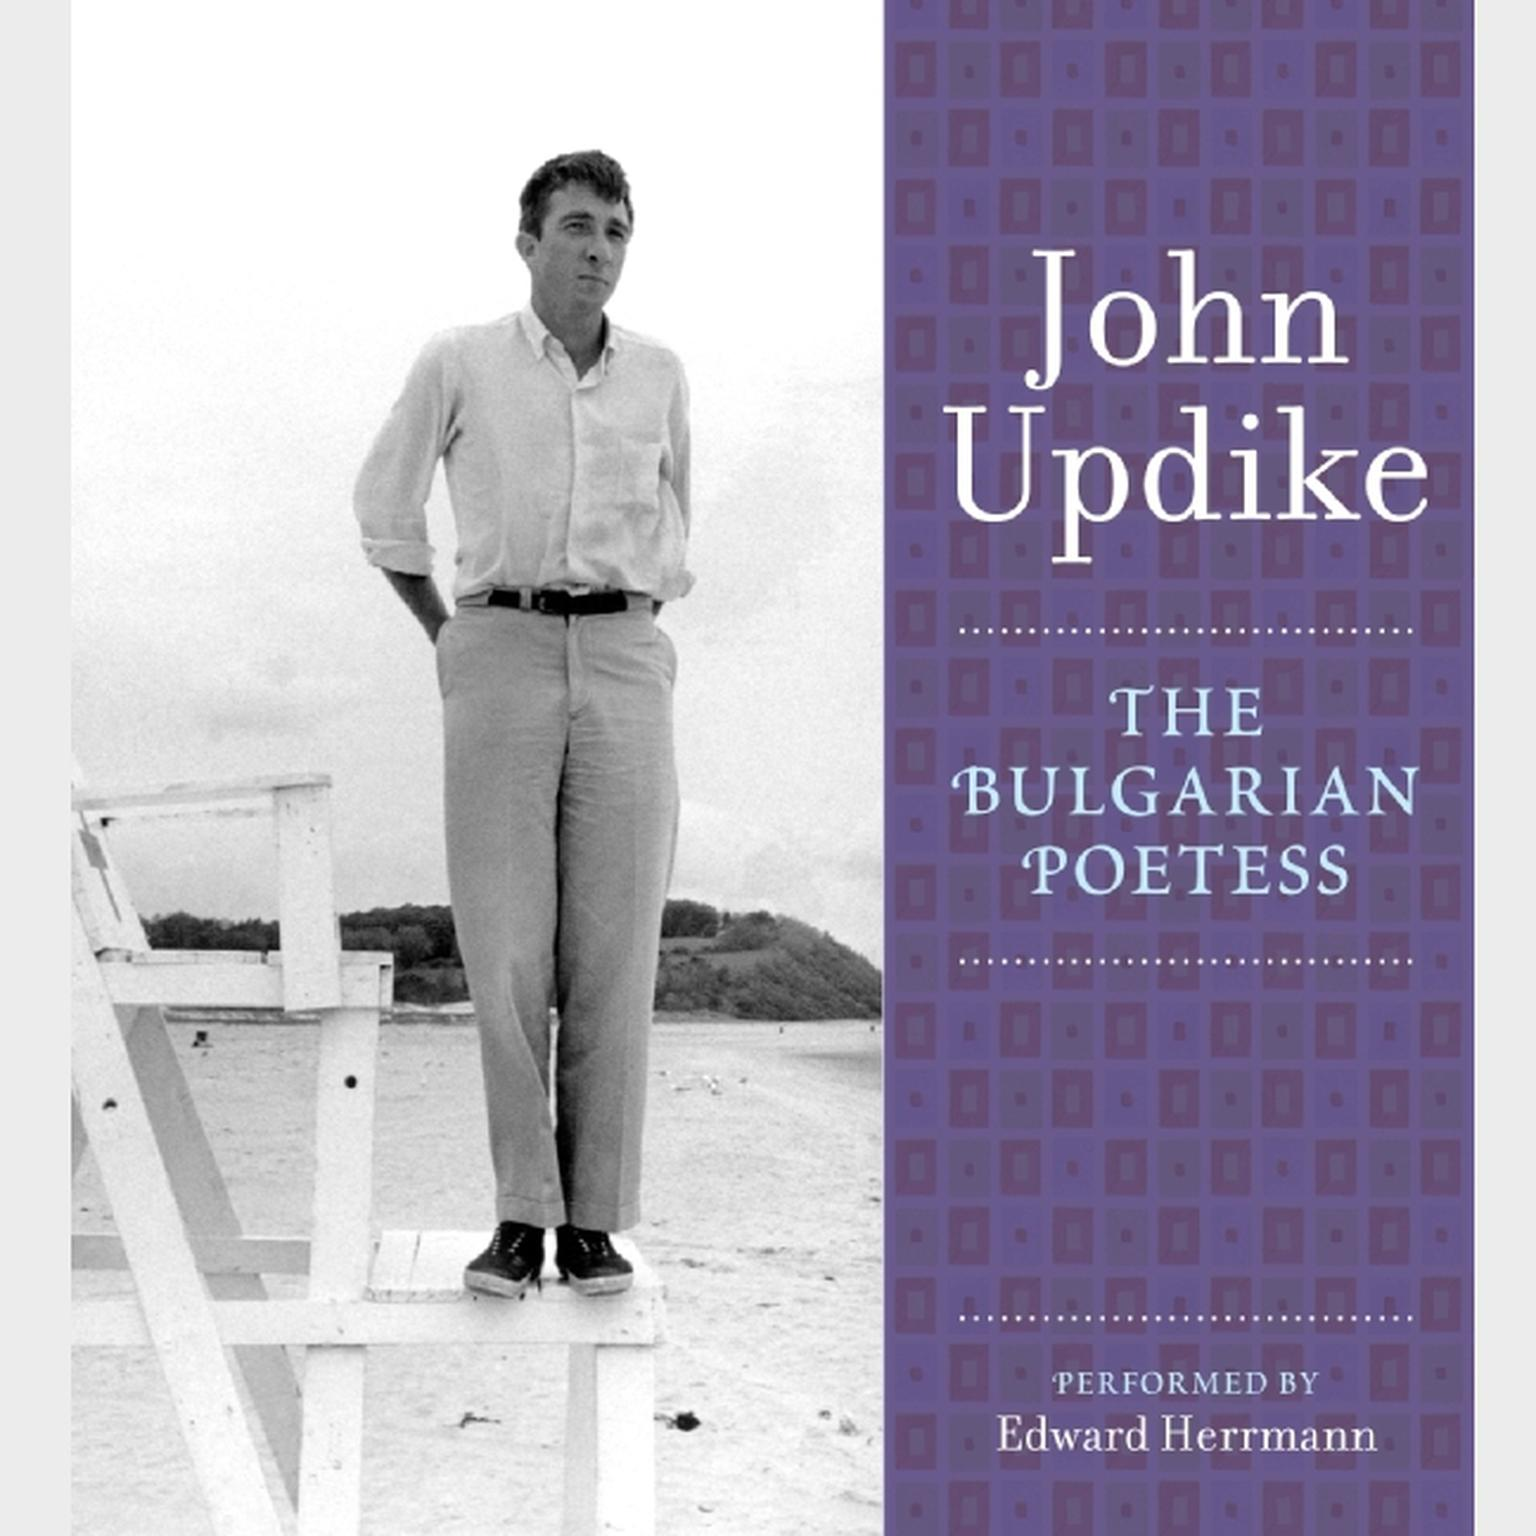 Printable The Bulgarian Poetess: A Selection from the John Updike Audio Collection Audiobook Cover Art